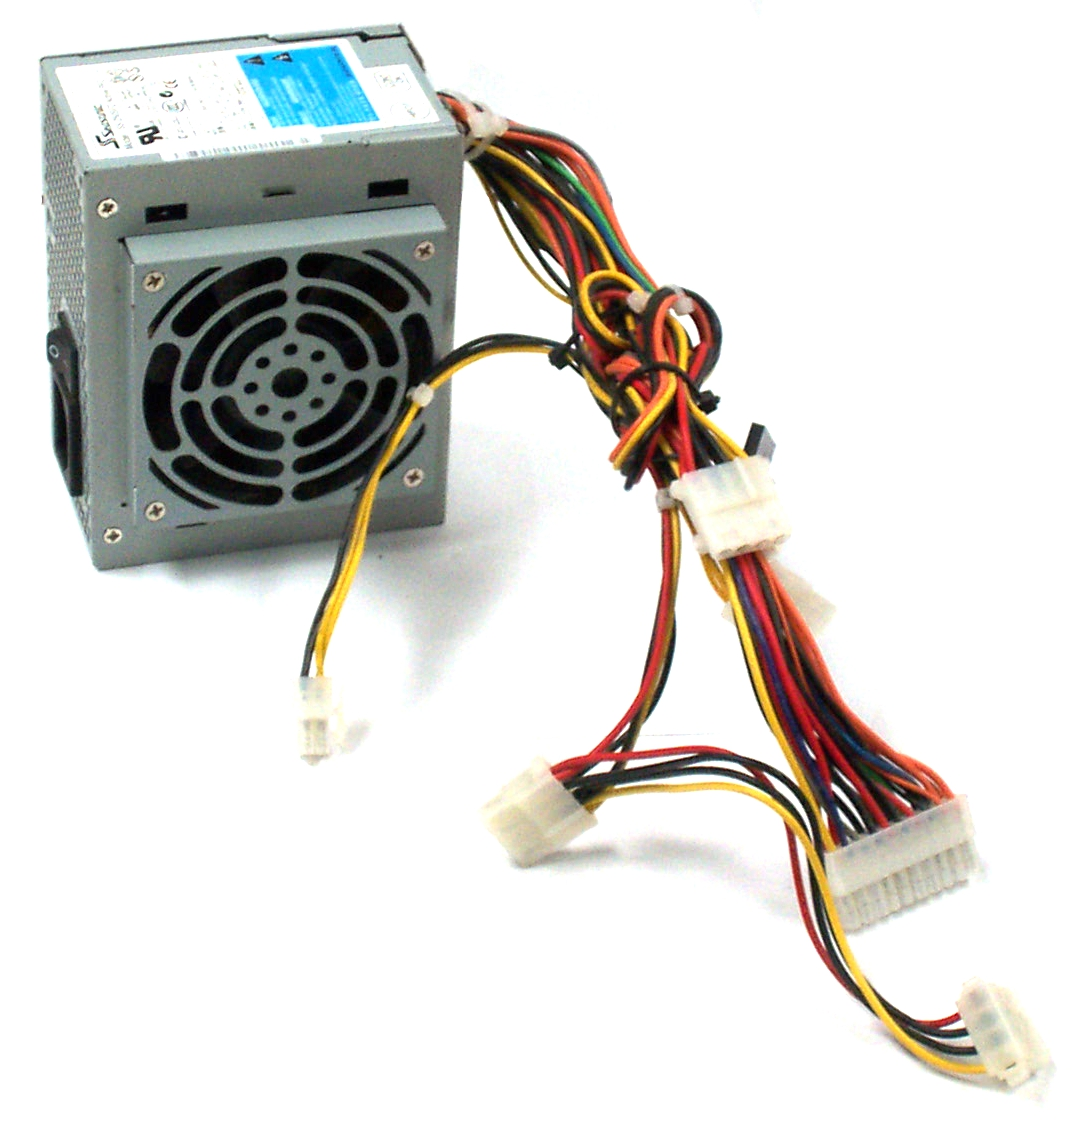 Seasonic SS-250SFD 250W Power Supply Unit with Active PFC